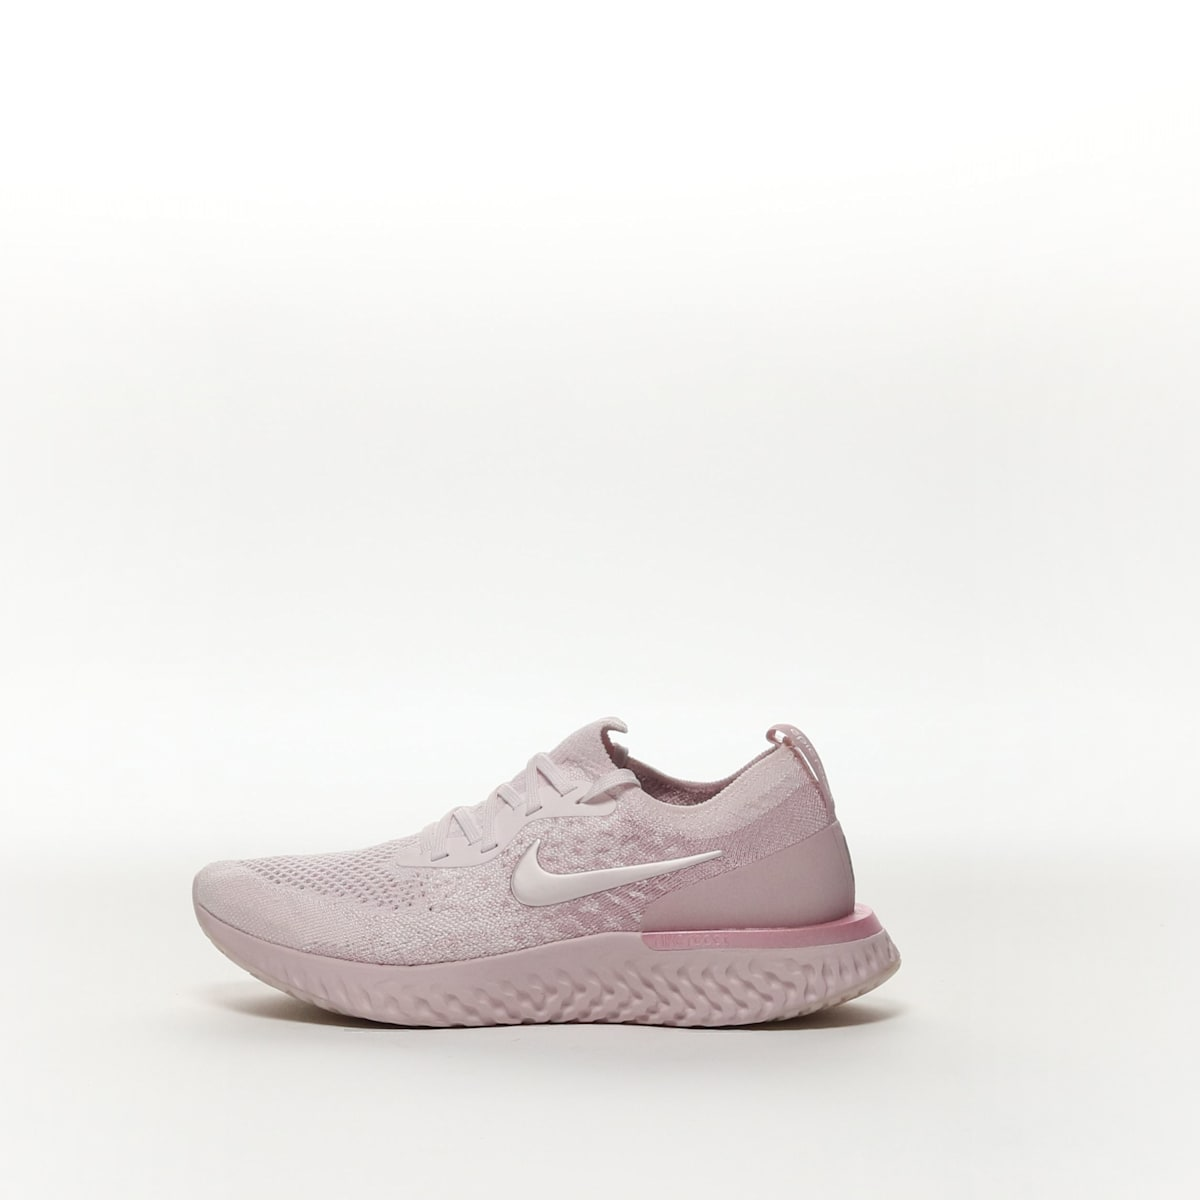 f0bd46f37741 Nike Epic React Flyknit - PEARL PINK BARELY ROSE ARCTIC PINK PEARL ...